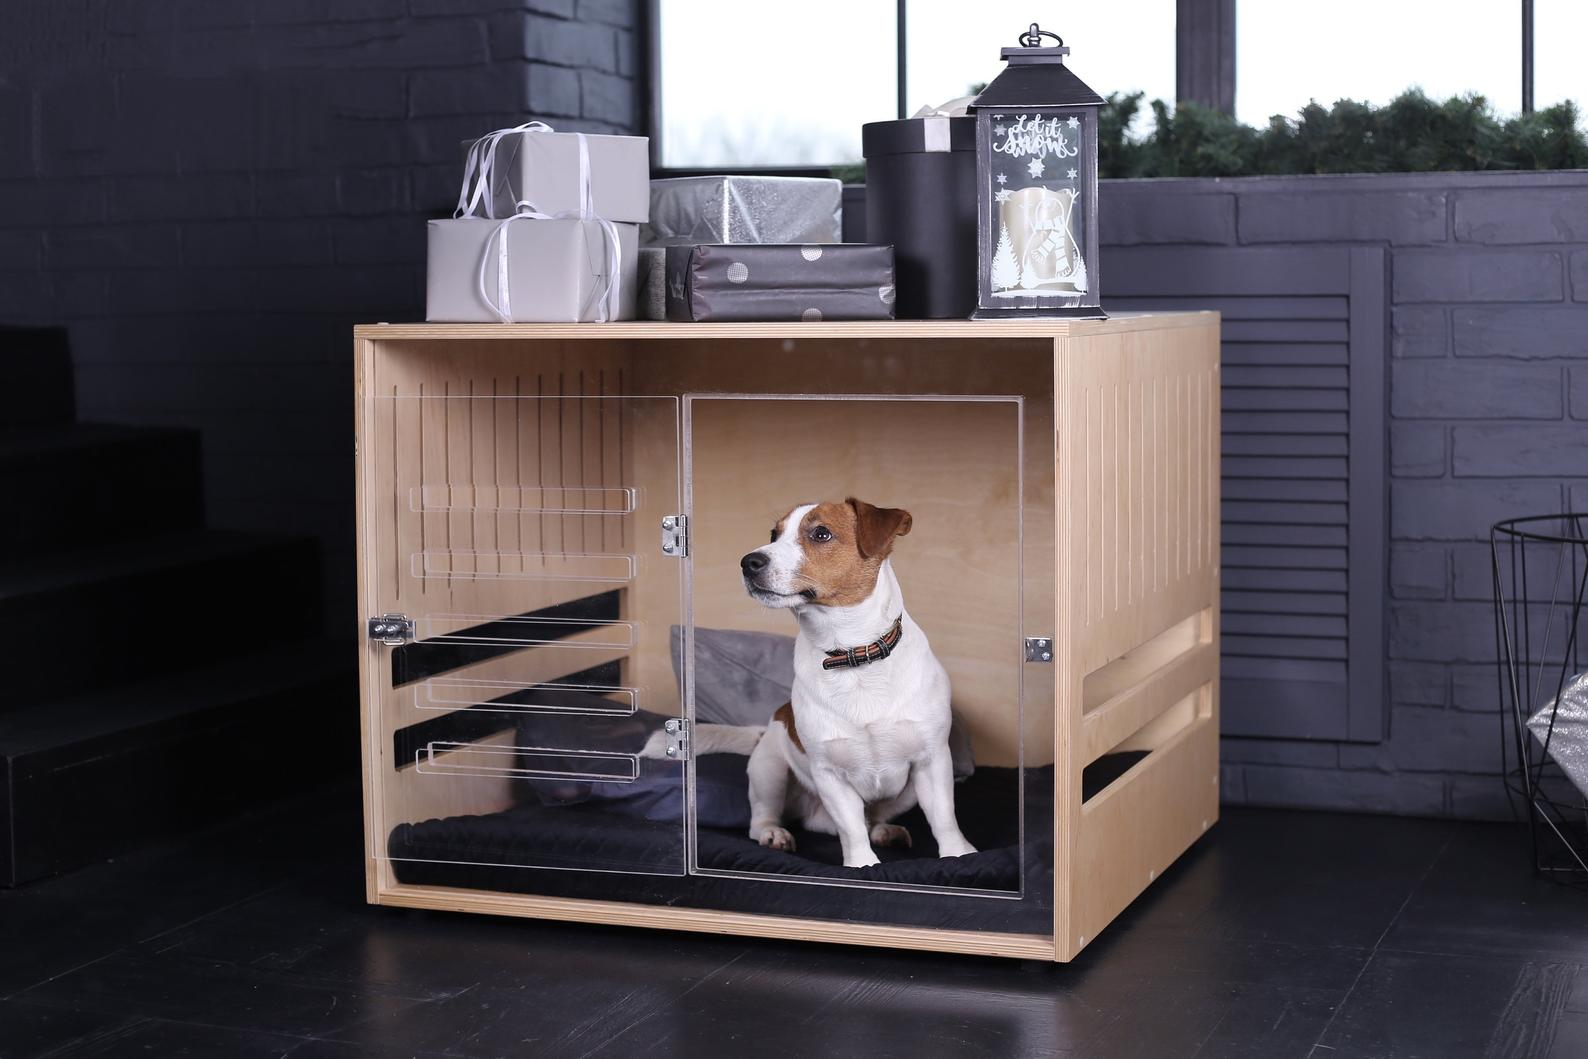 Modern Plywood Dog Crate with Acrylic Front via Nice People Workshop (Etsy)